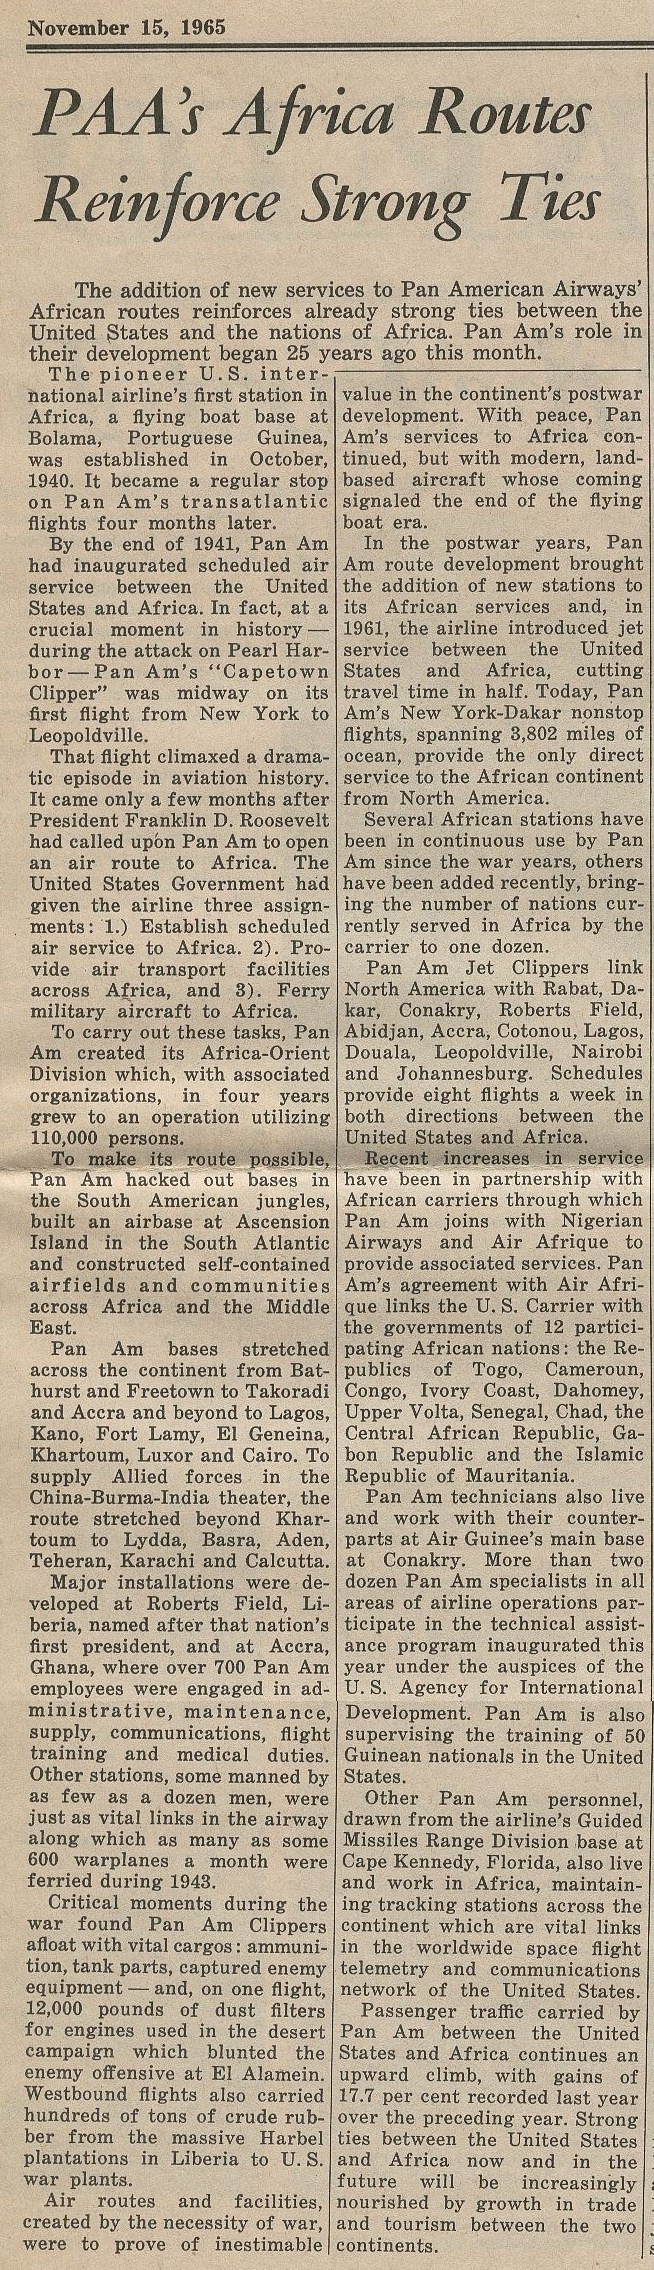 1965, November 15, Article on Pan Am Africa Service.